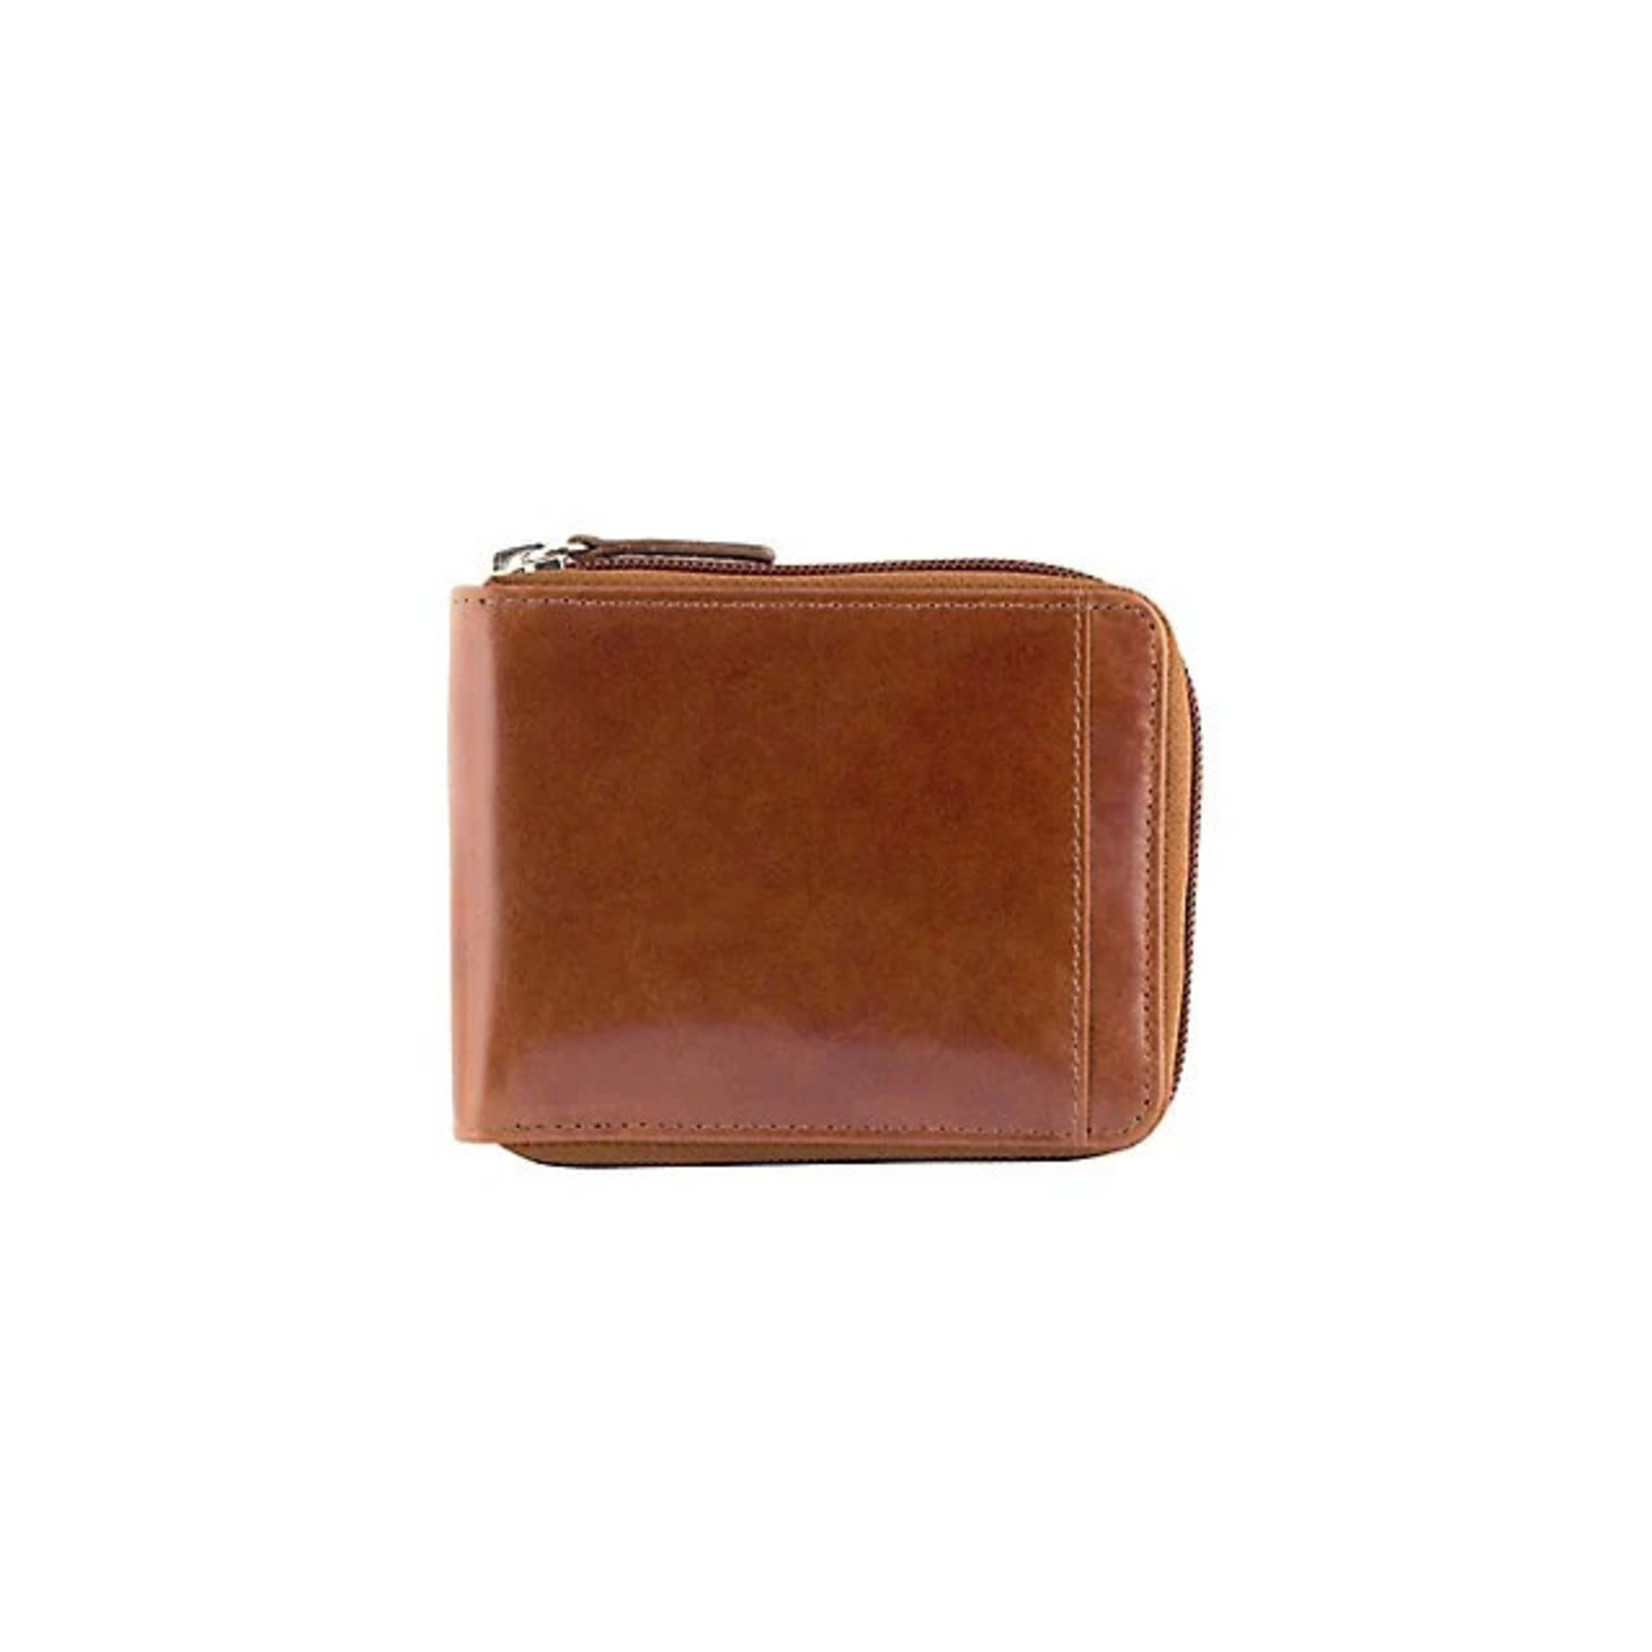 Mancini Mancini 8700159 Zippered Wallet with Removable Passcase - Cognac